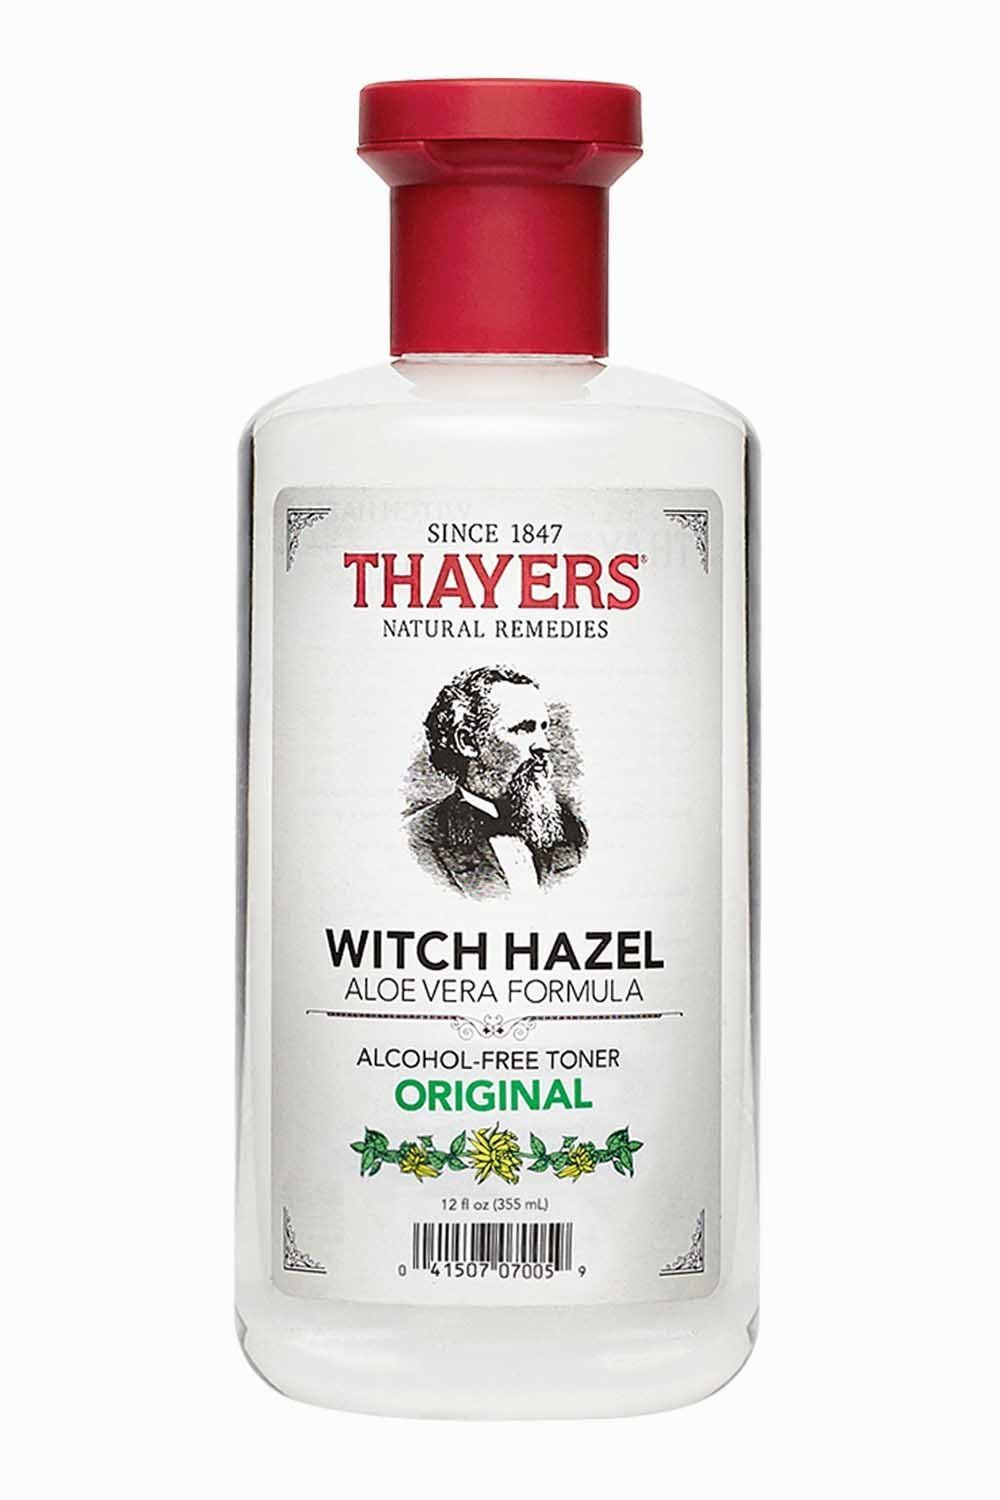 Thayers Natural Remedies Witch Hazel Original Organic Facial Toner with Aloe Vera Formula, 12 fl. Oz. product image